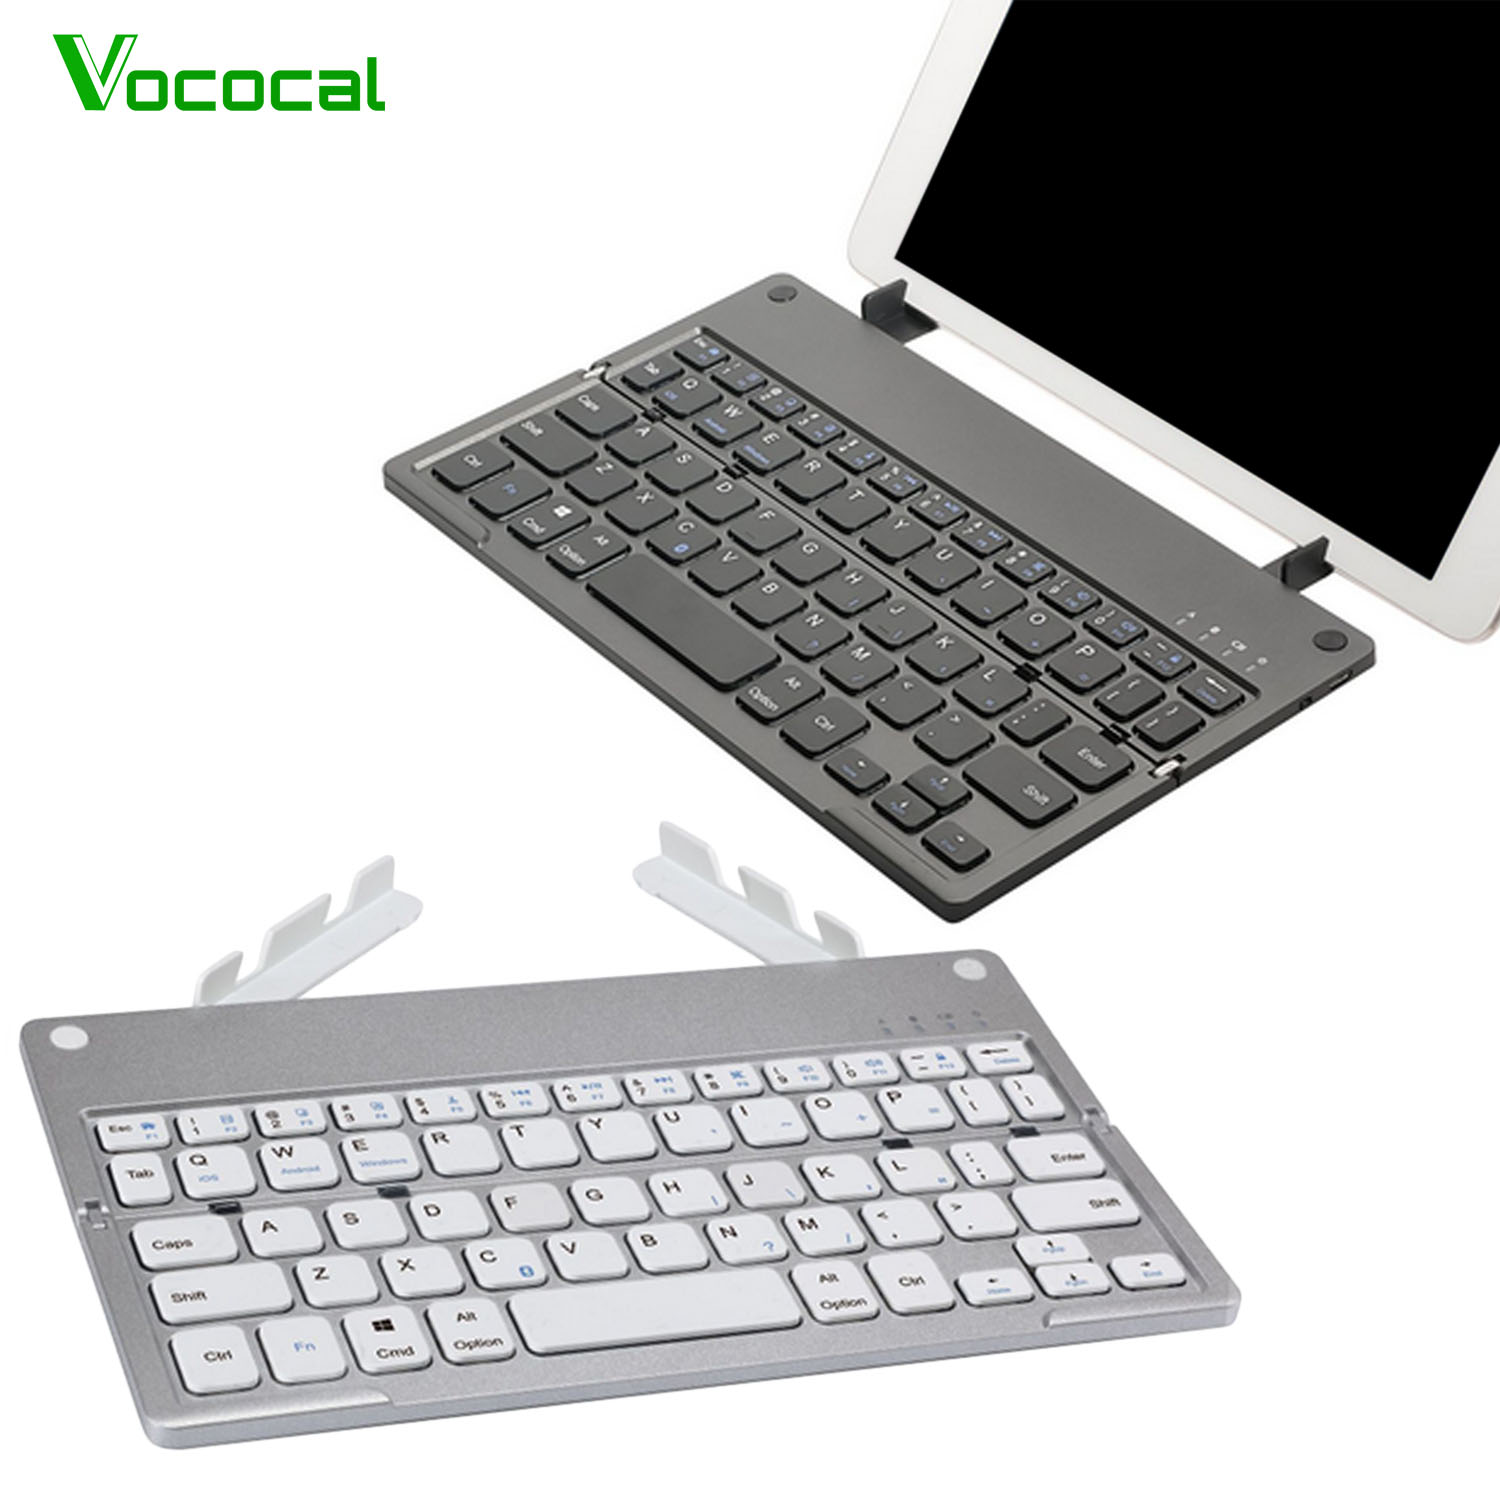 Vococal Foldable Rechargeable Wireless Bluetooth Keyboard